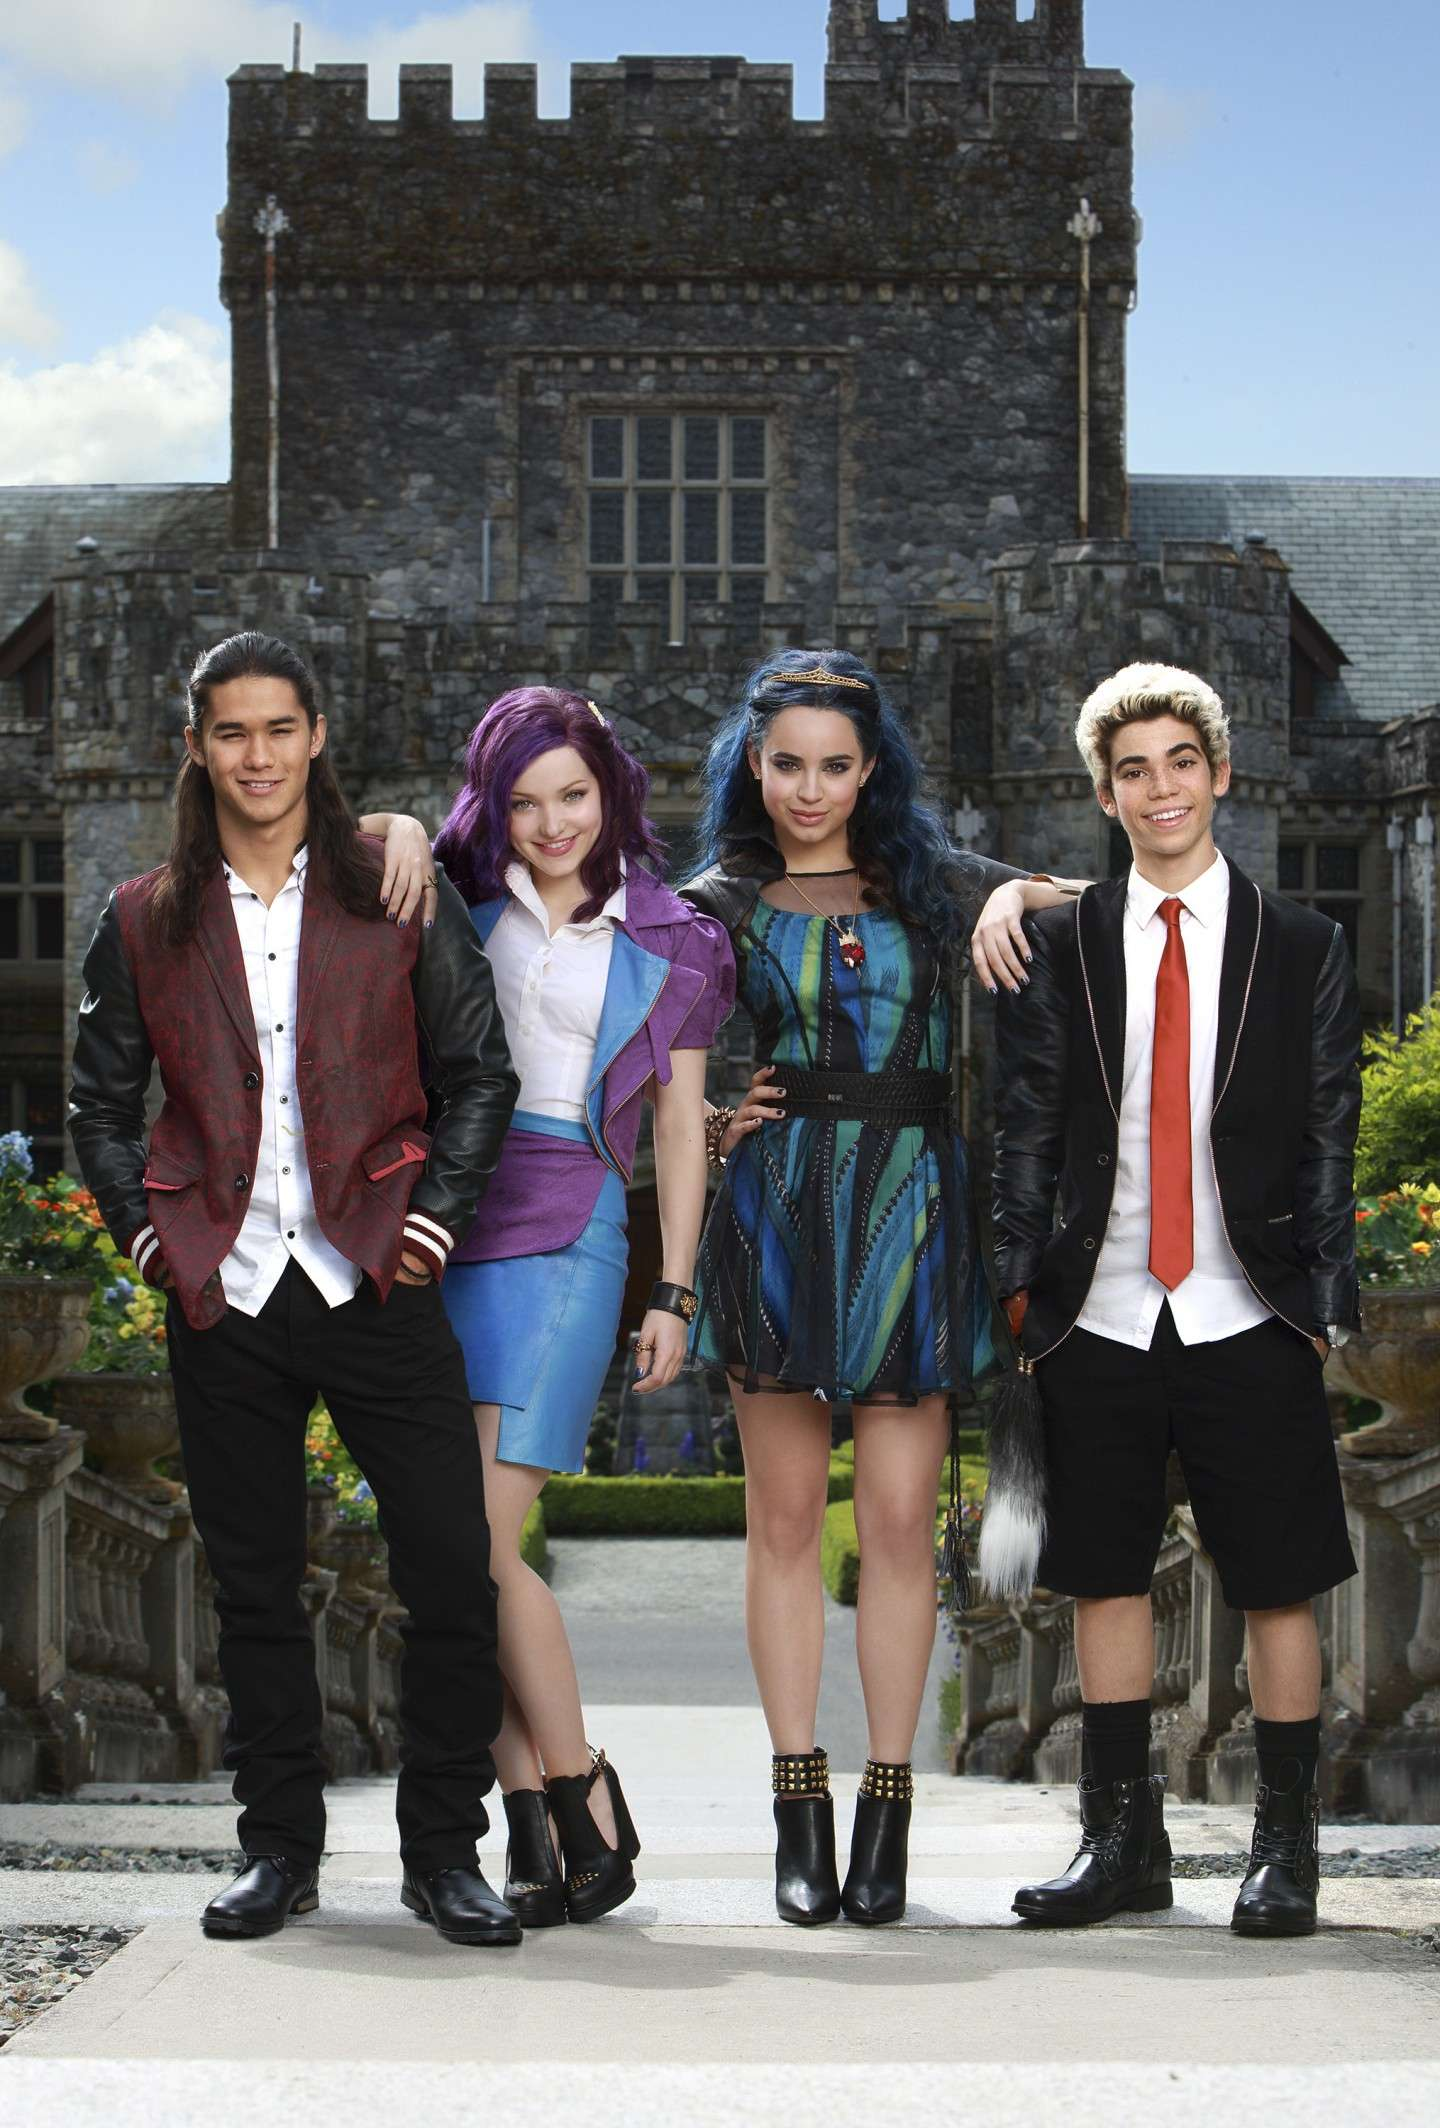 I Descendants